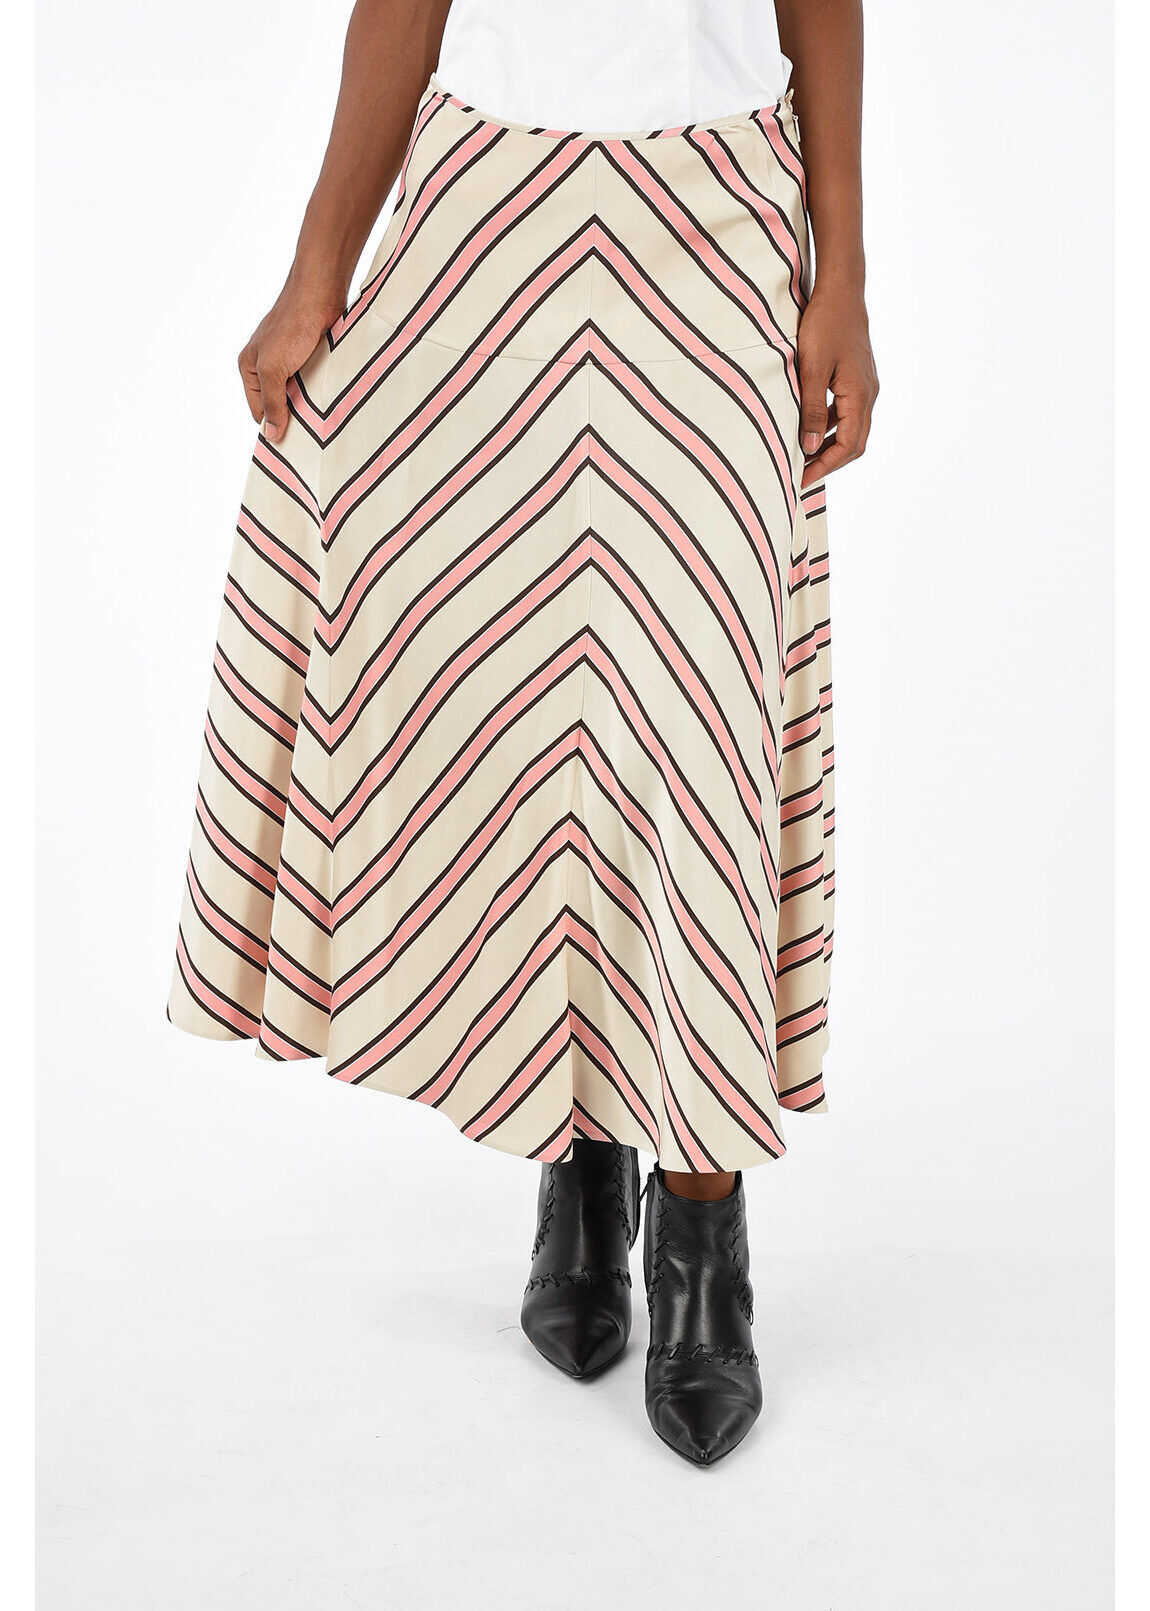 Fendi Striped SHADED Skirt PINK